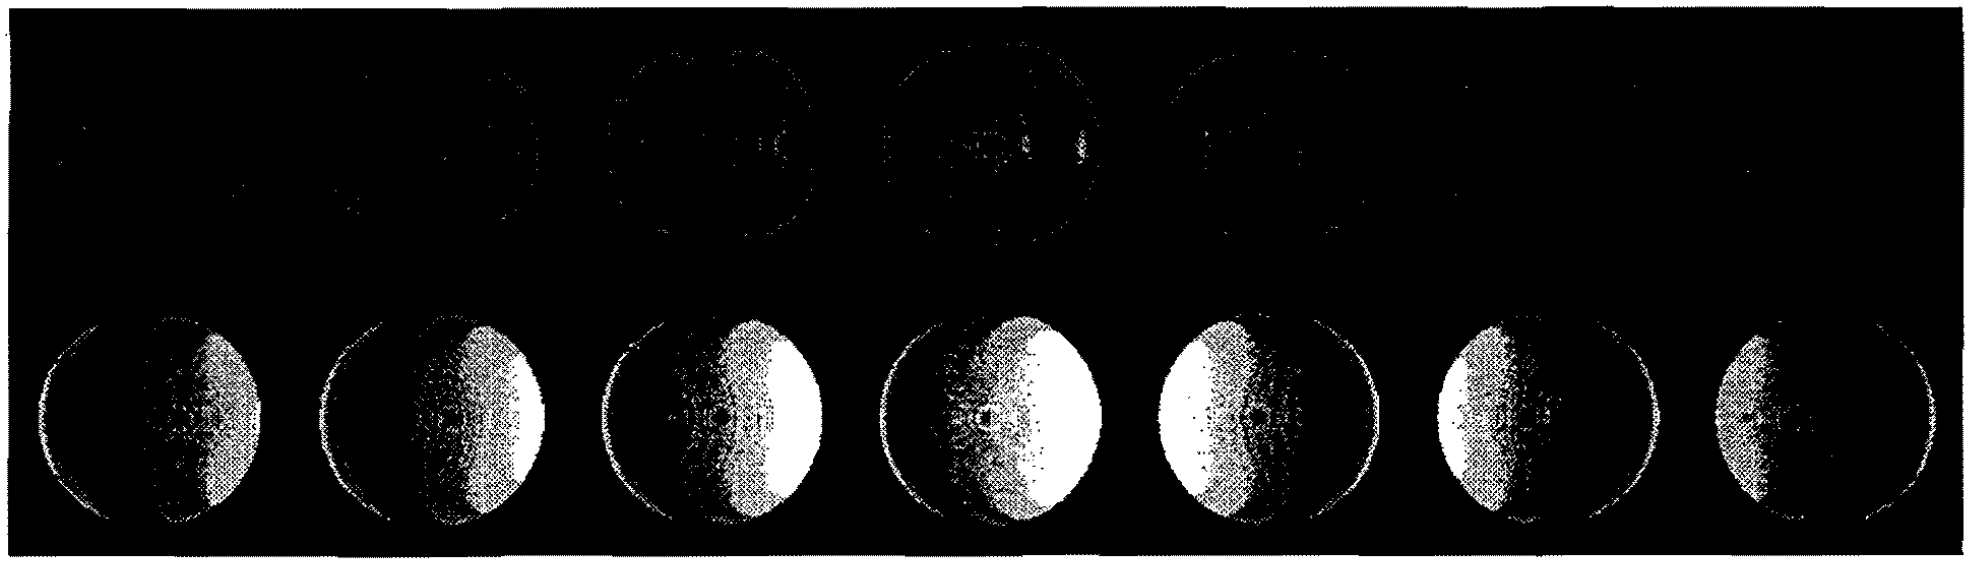 Sheared Interpolation and Gradient Estimation for Real-Time Volume Renderings